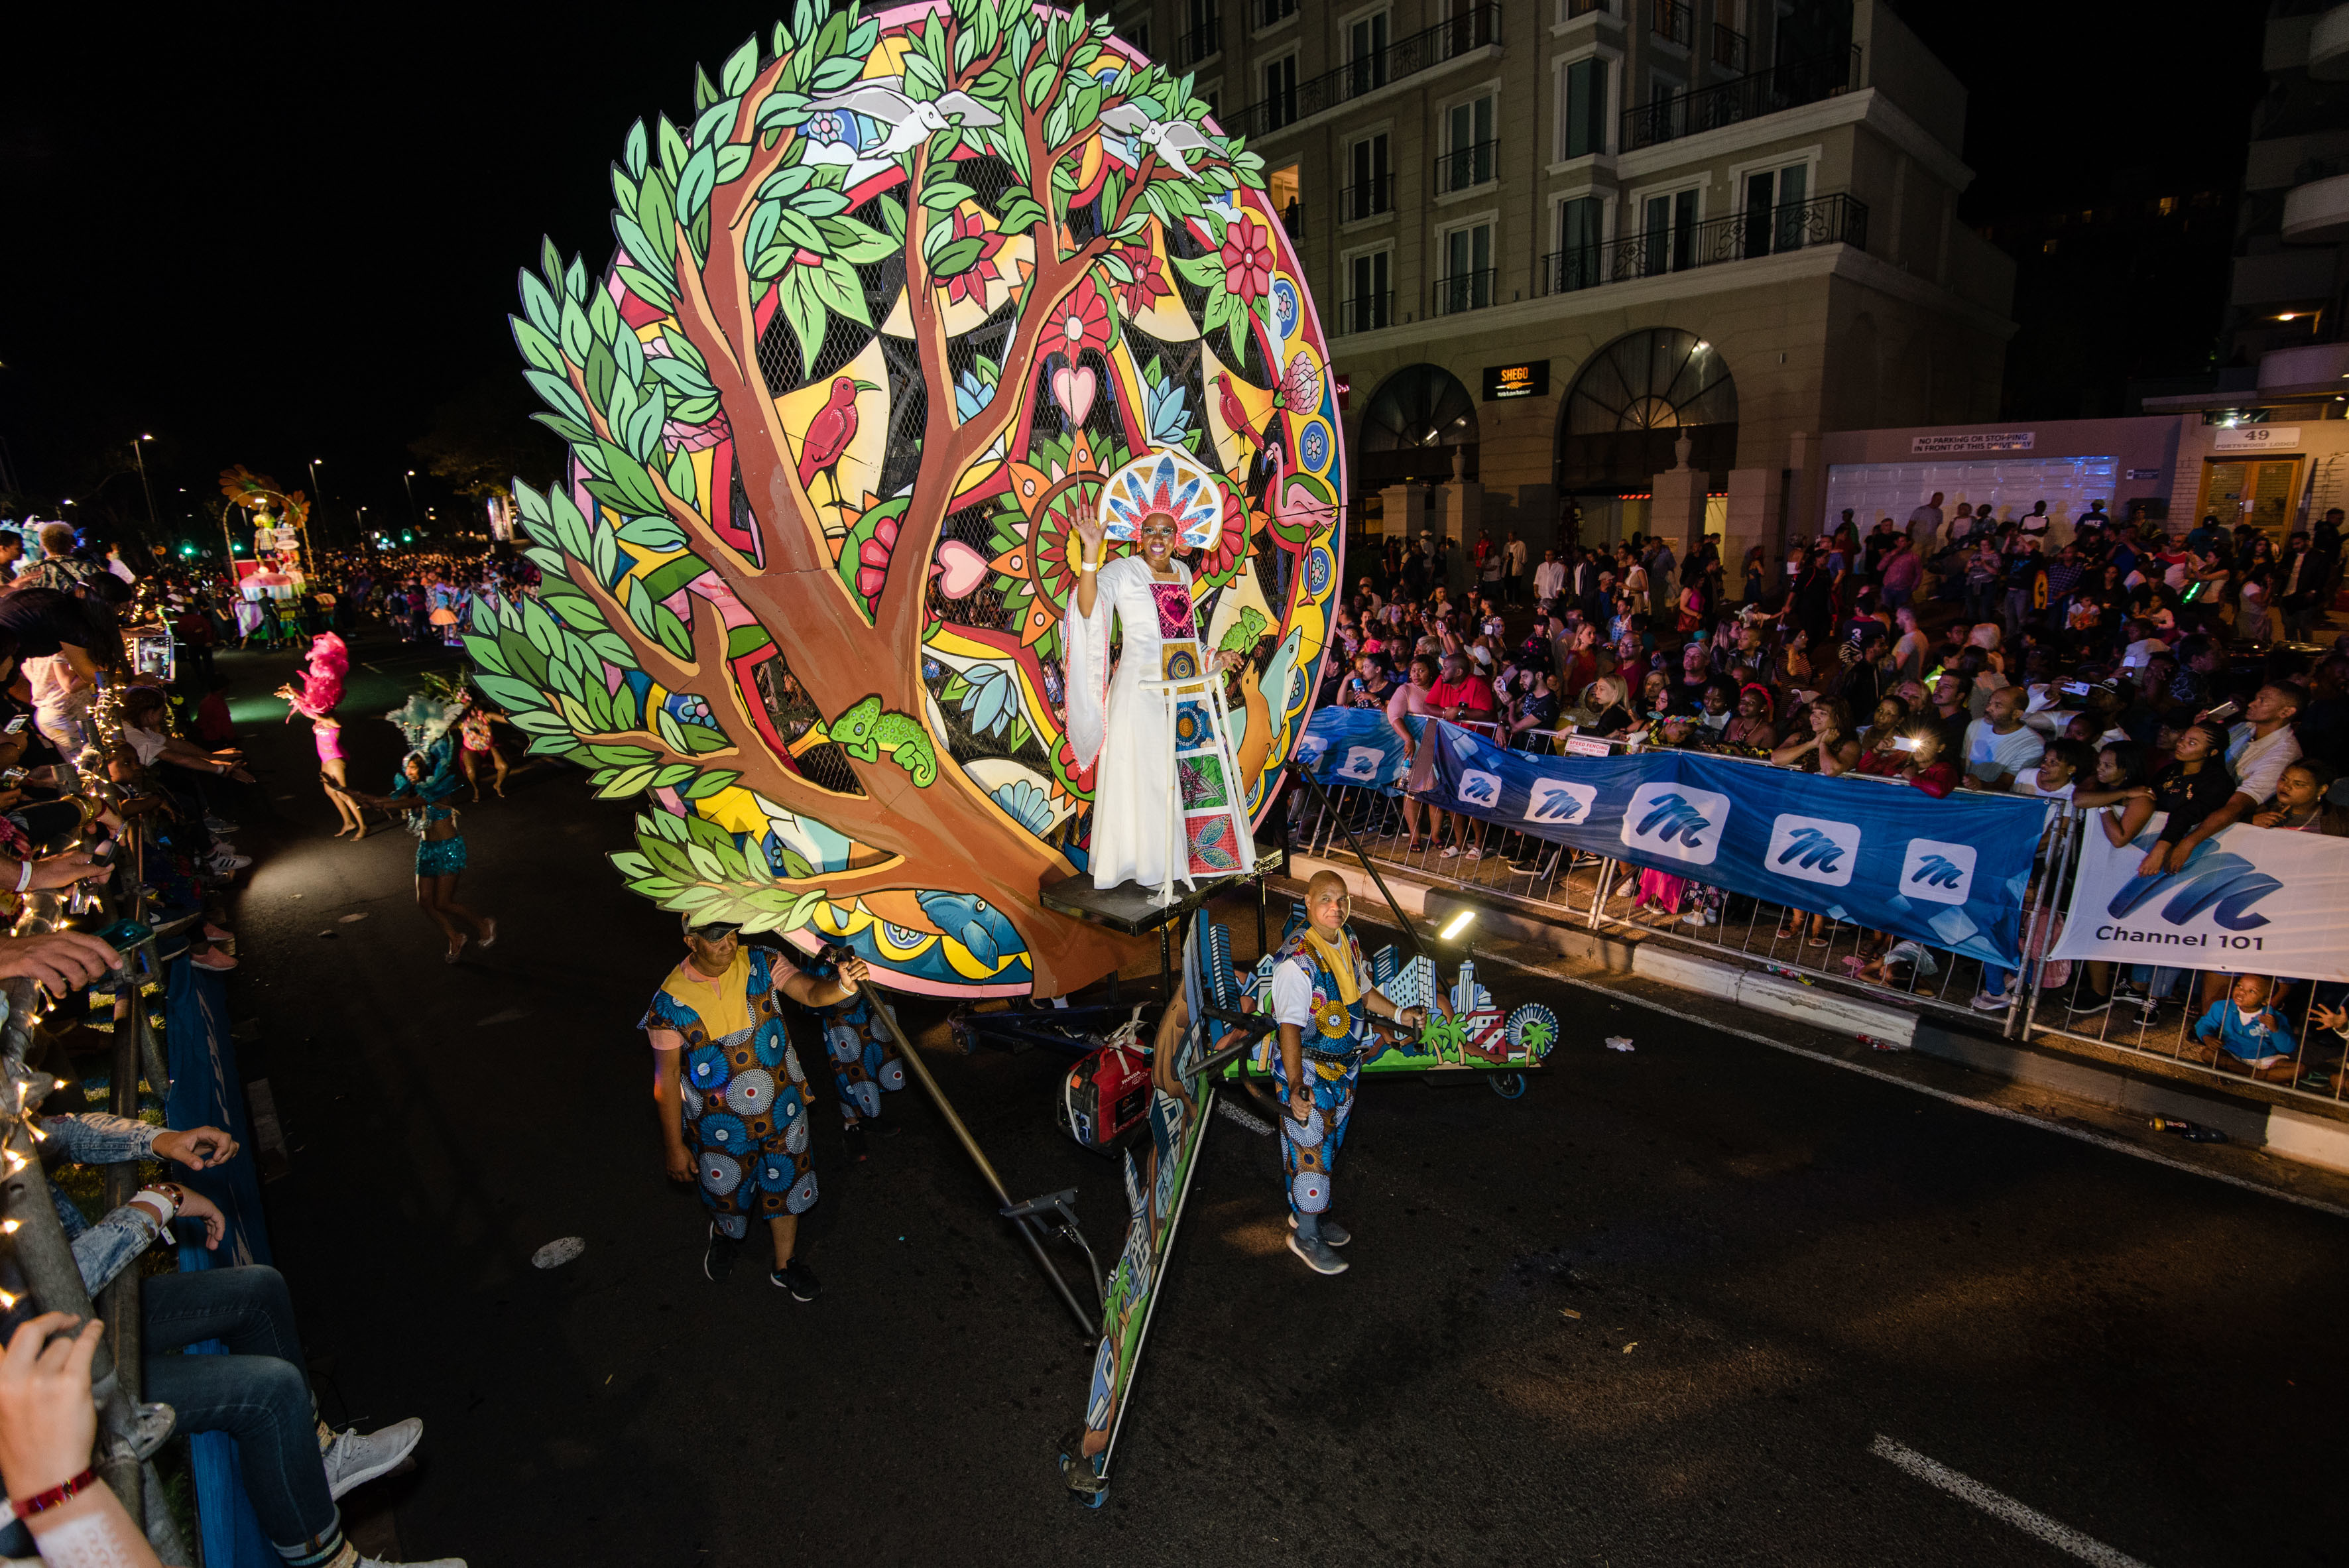 Cape Town Carnival 2018 tree display